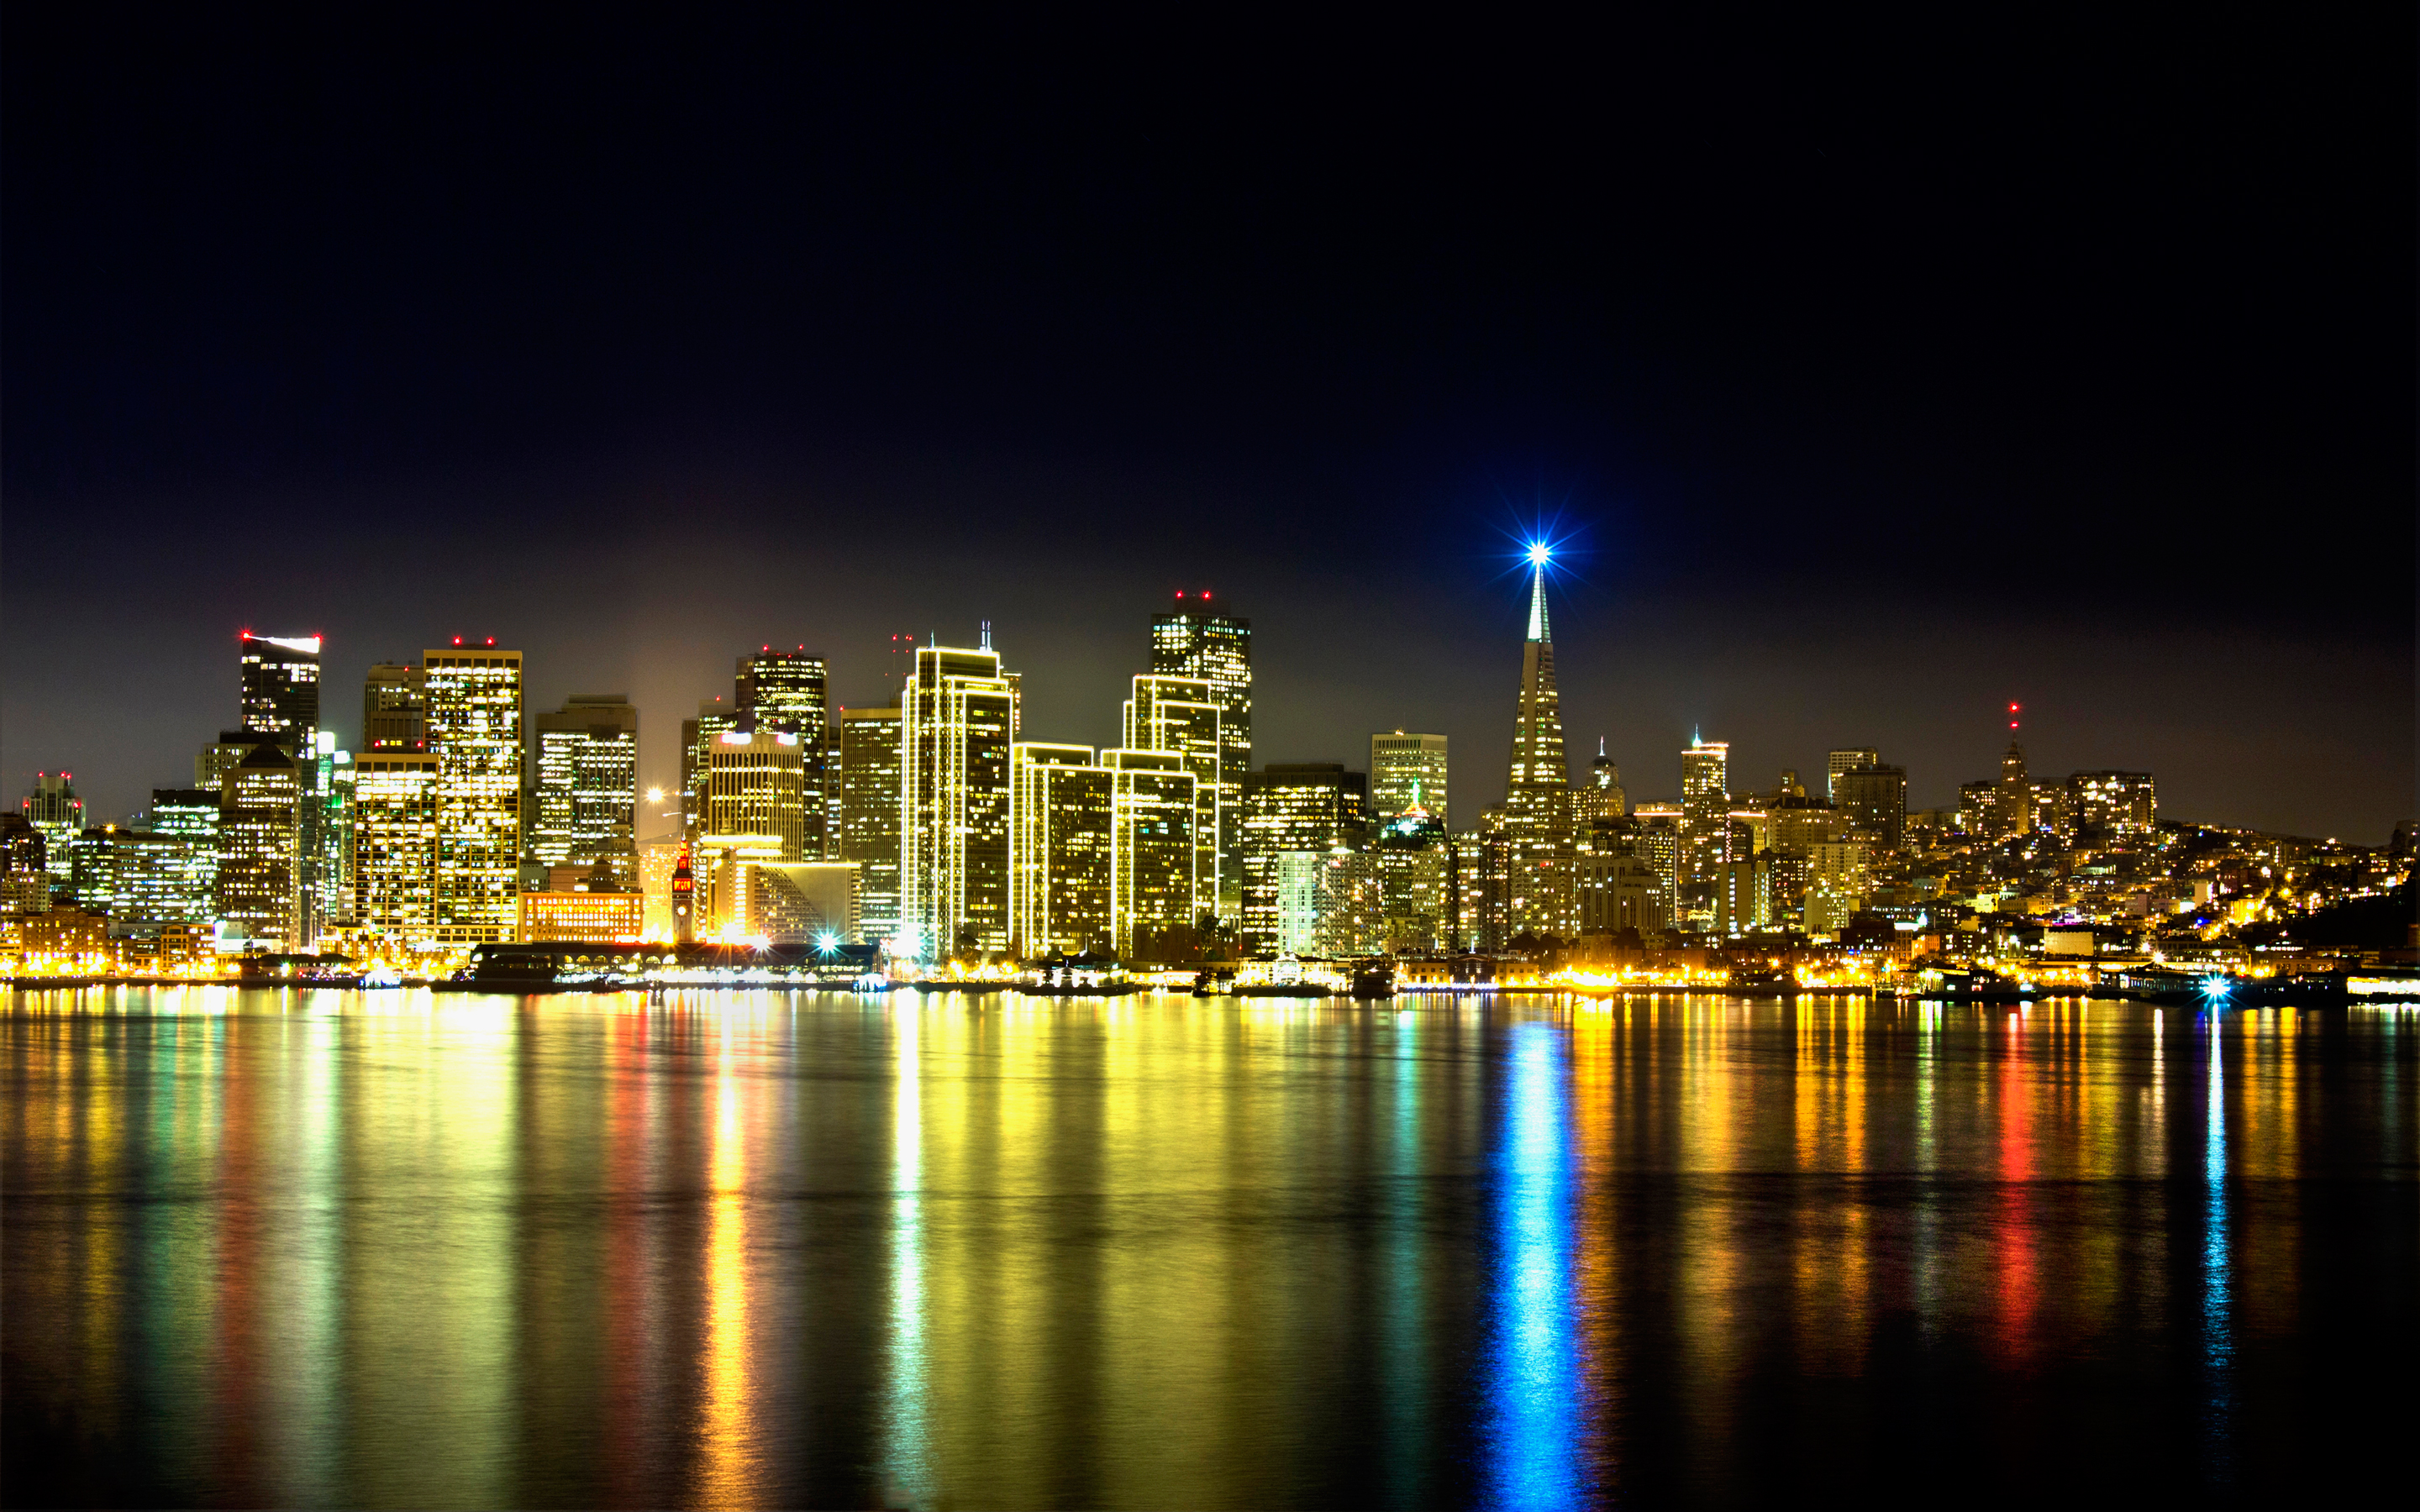 San Francisco Skyline Wallpapers HD Wallpapers 2880x1800